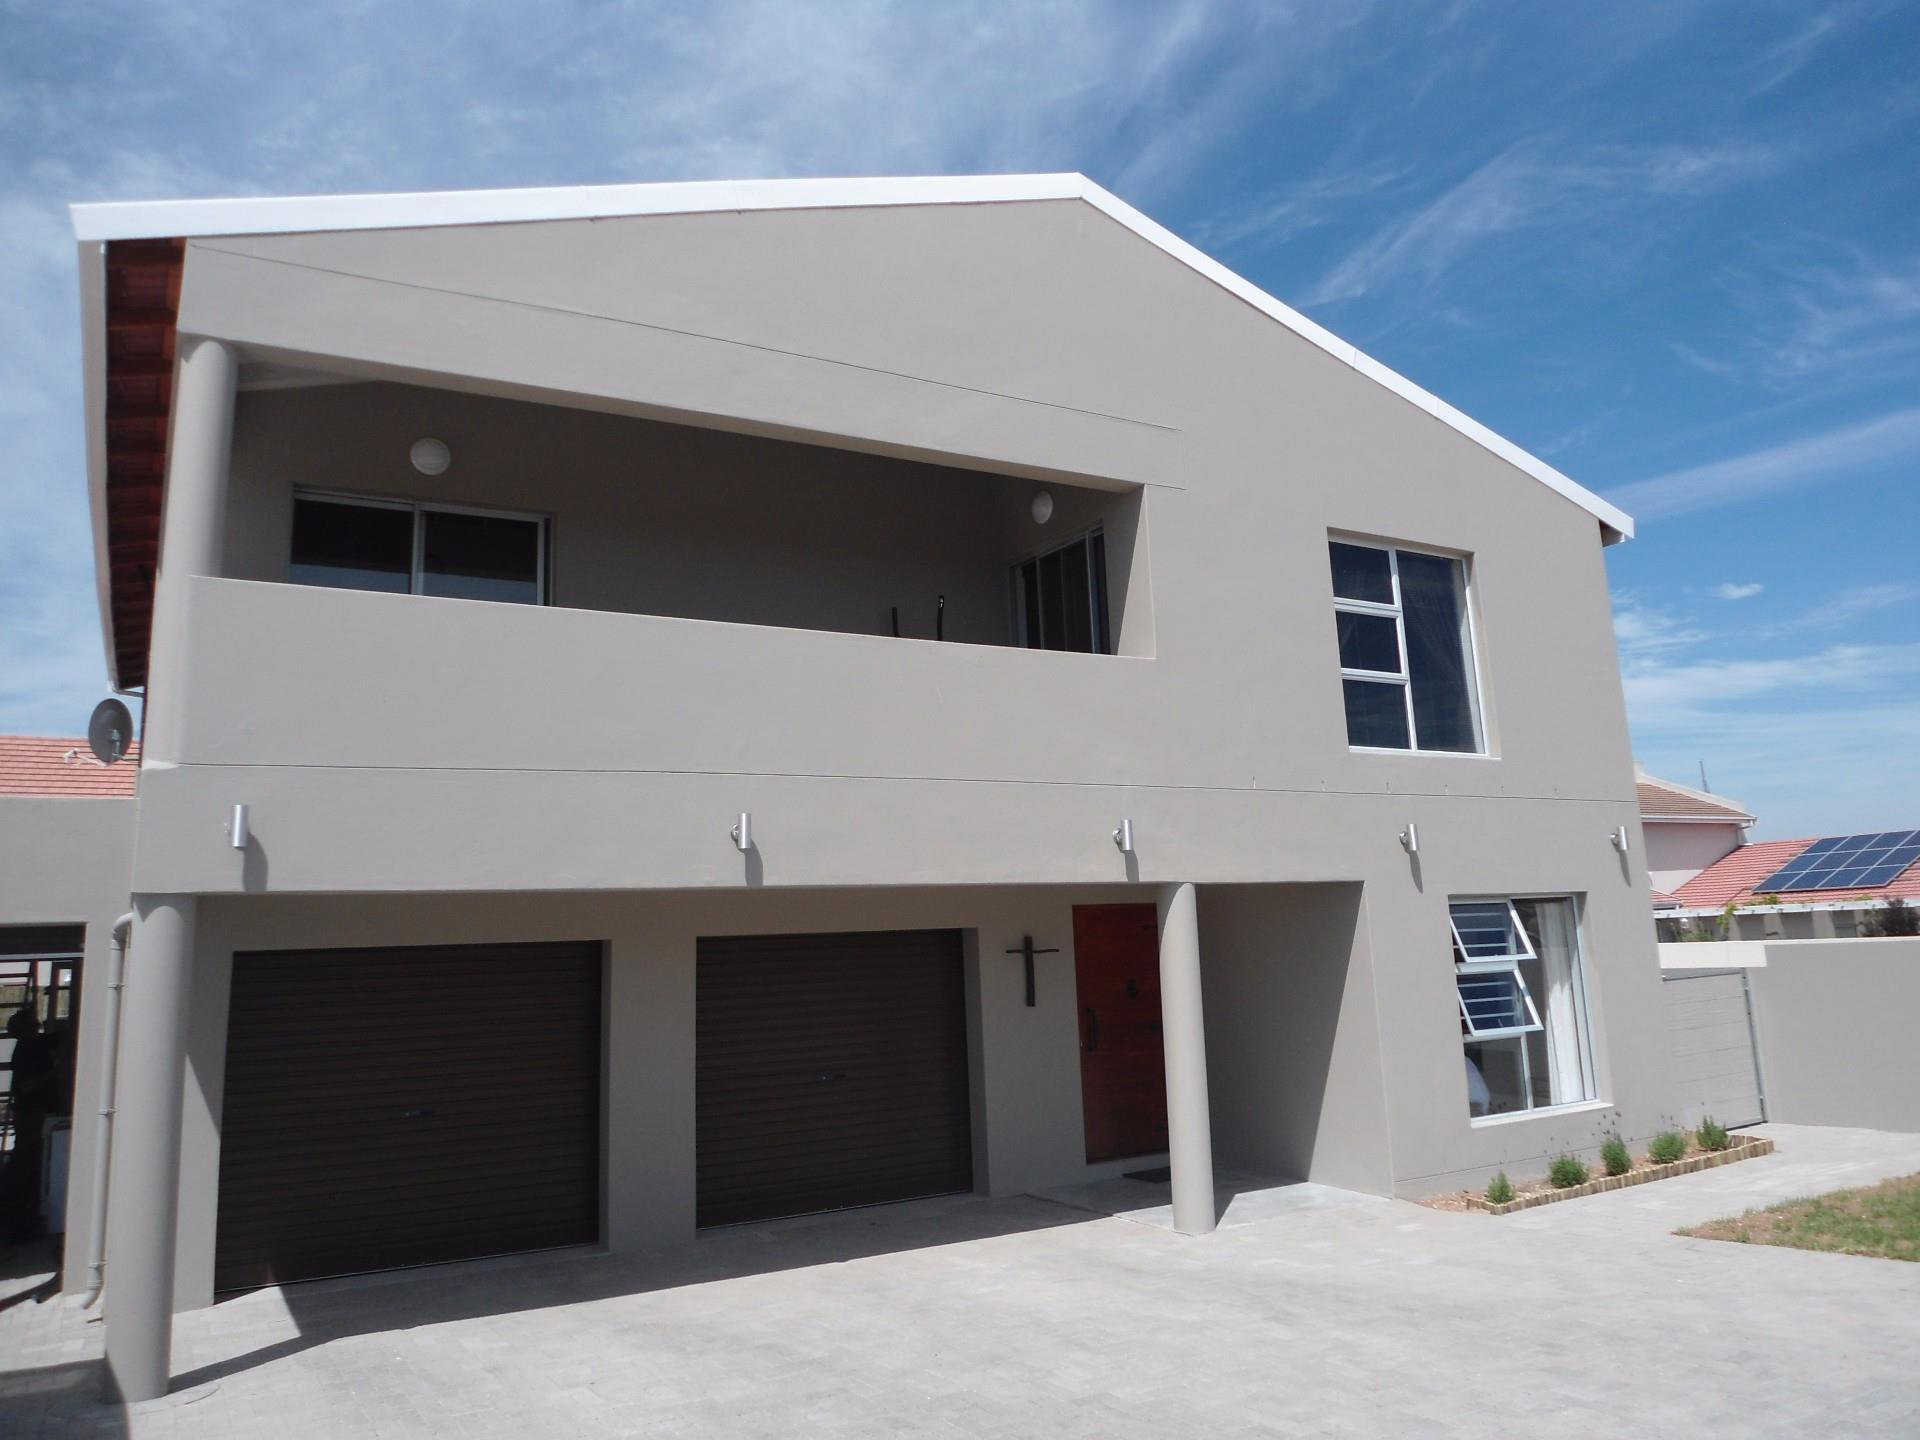 Velddrif, Port Owen Property  | Houses For Sale Port Owen, Port Owen, House 4 bedrooms property for sale Price:3,025,000